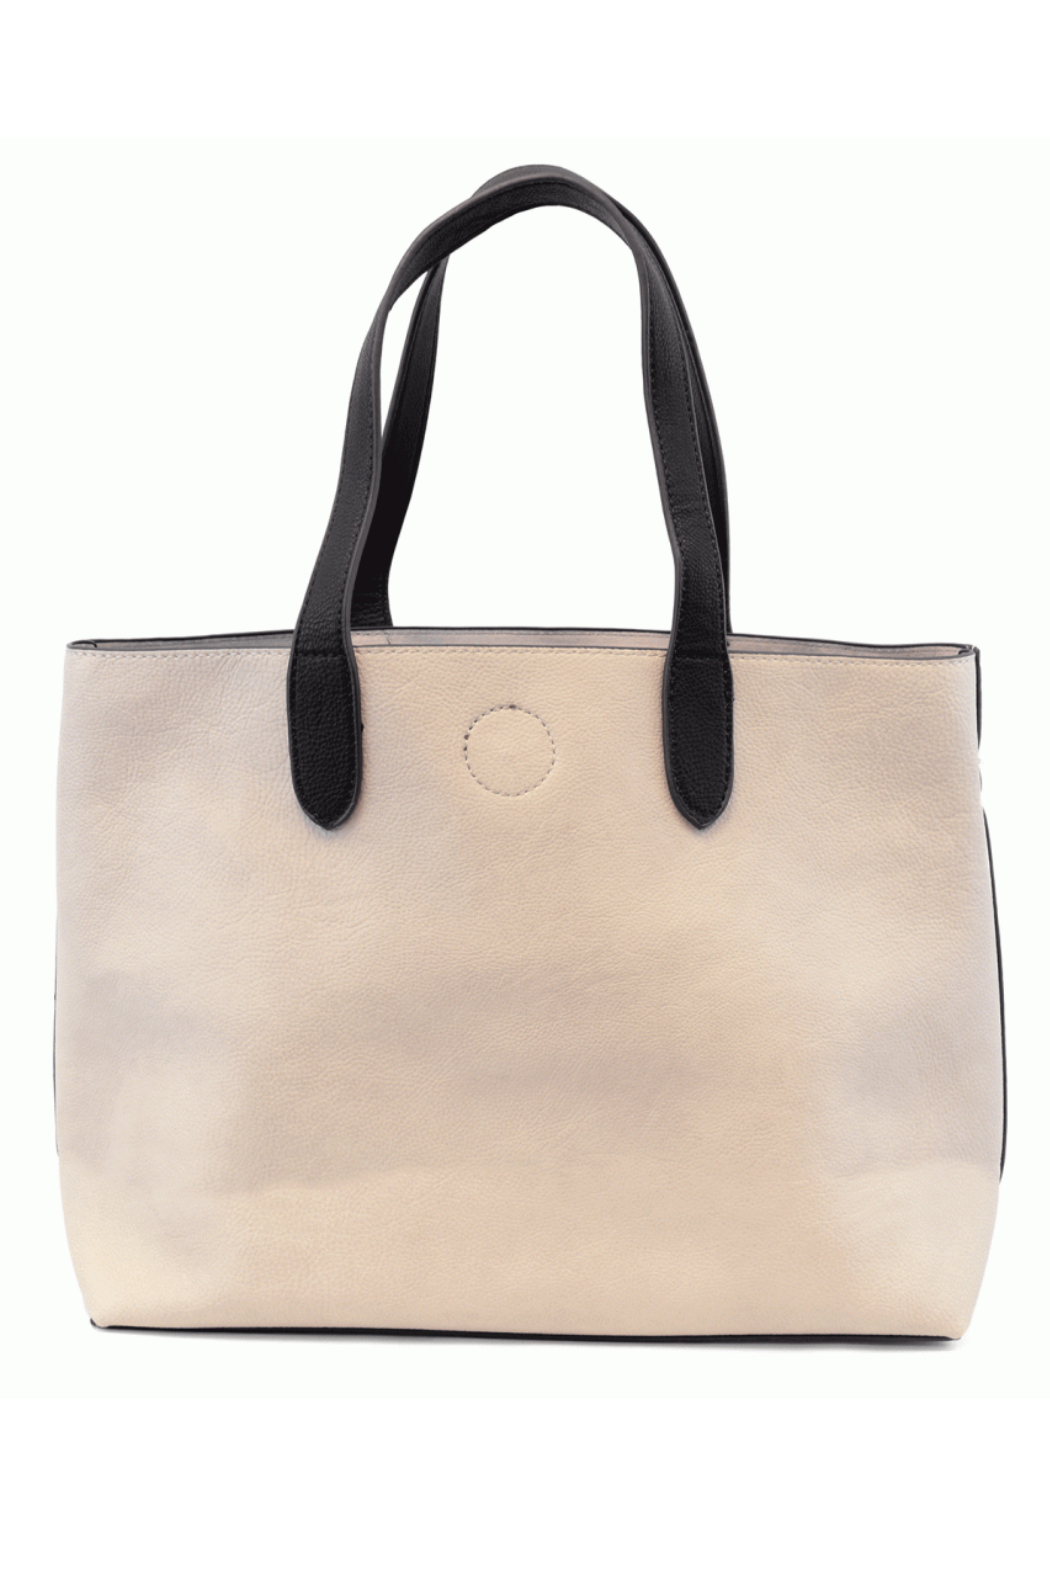 Joy Susan New Mariah Medium Convertible Tote - Main Image